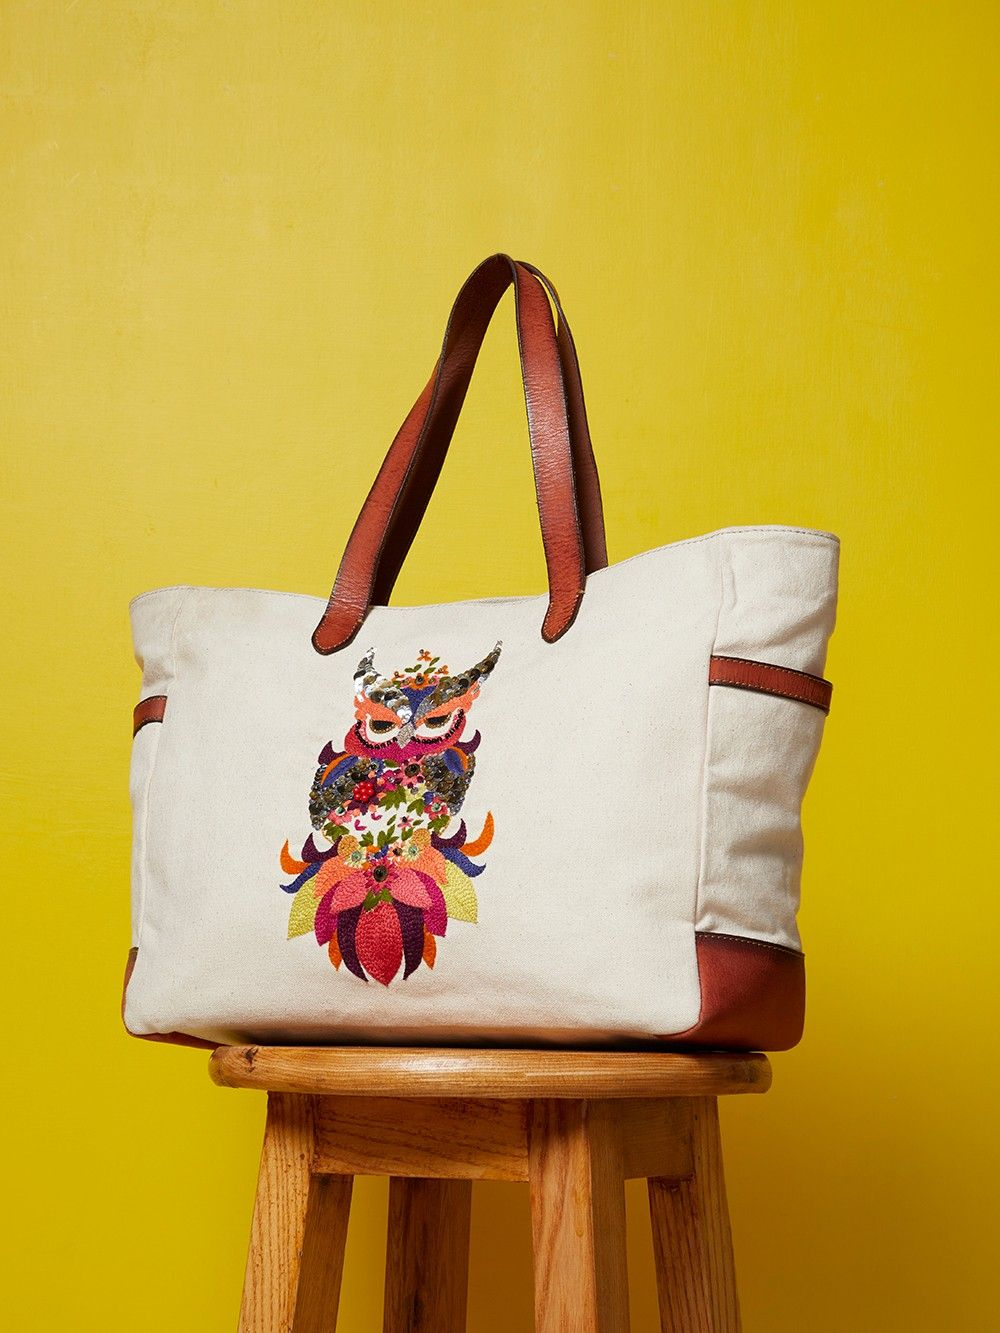 65d92dd39db Buy White Hand Embroidered Owl Canvas Tote Bag online at Theloom